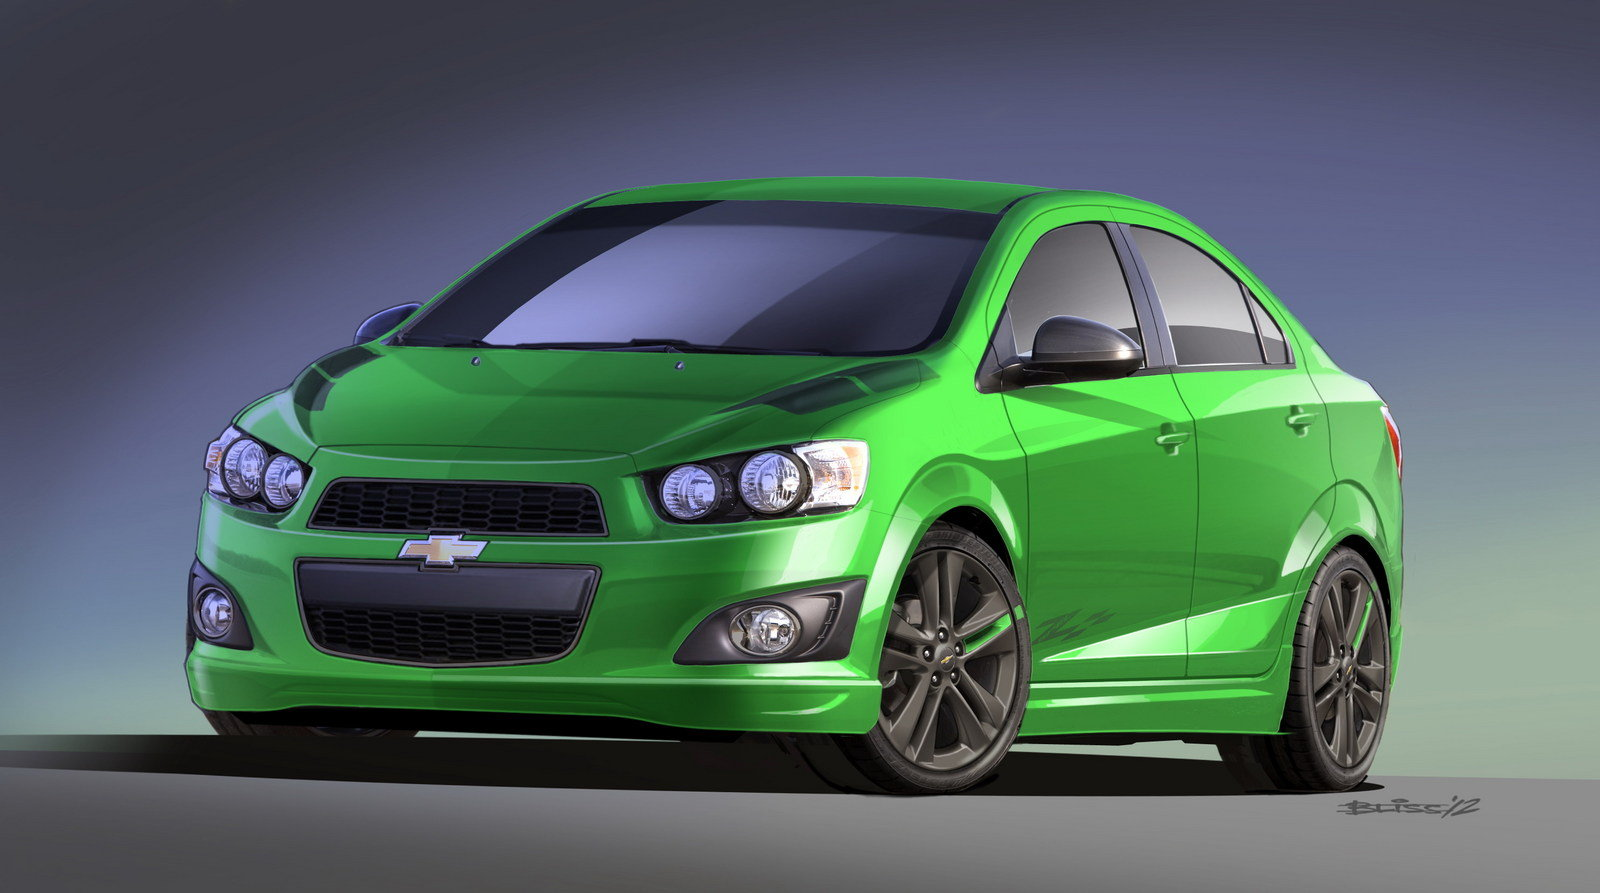 2012 Chevrolet Sonic Z-Spec 1 Concept Review - Top Speed